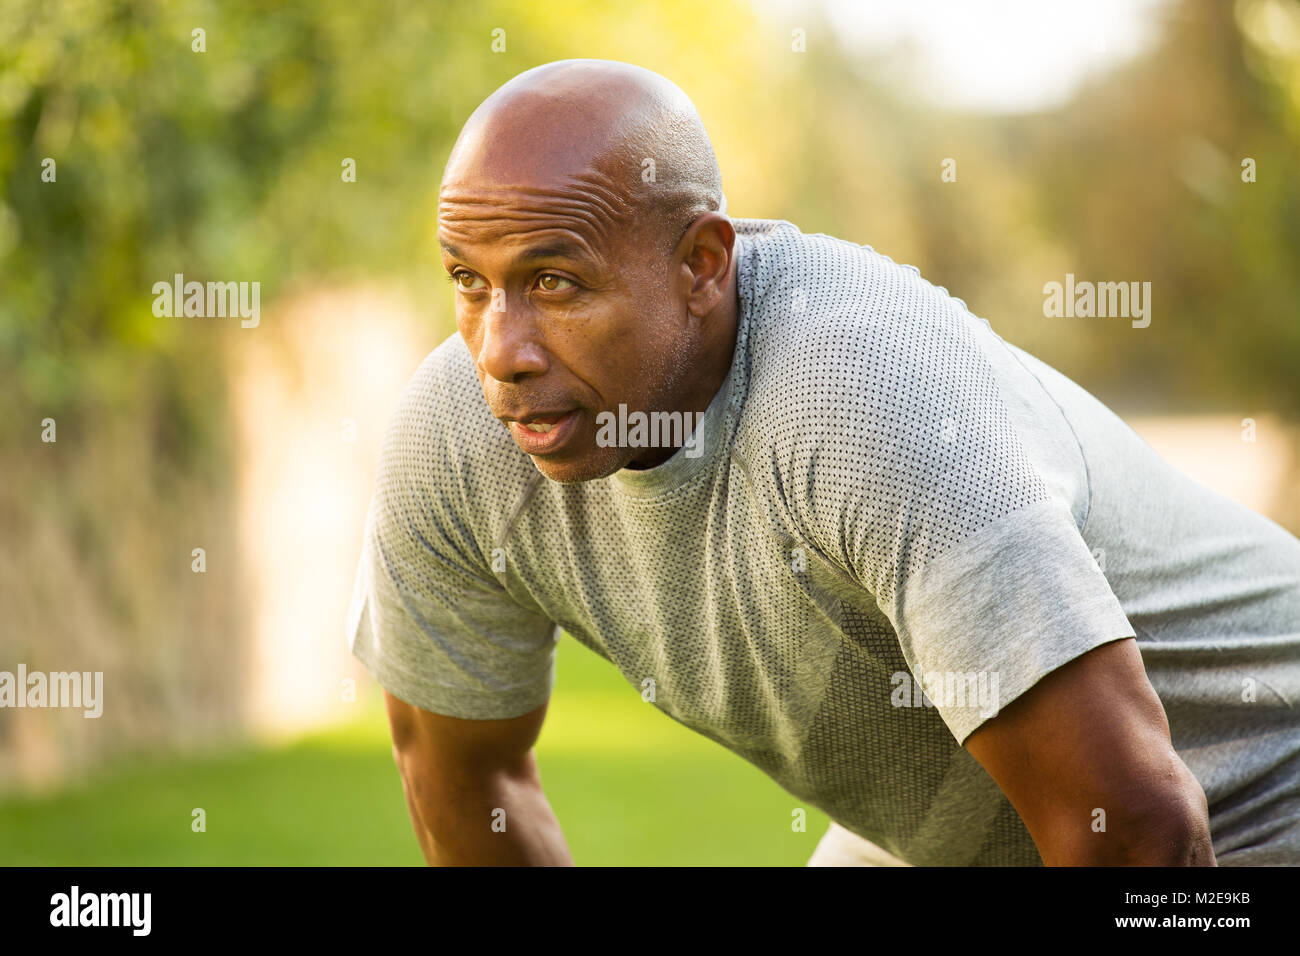 Fit African American man lifting weights - Stock Image